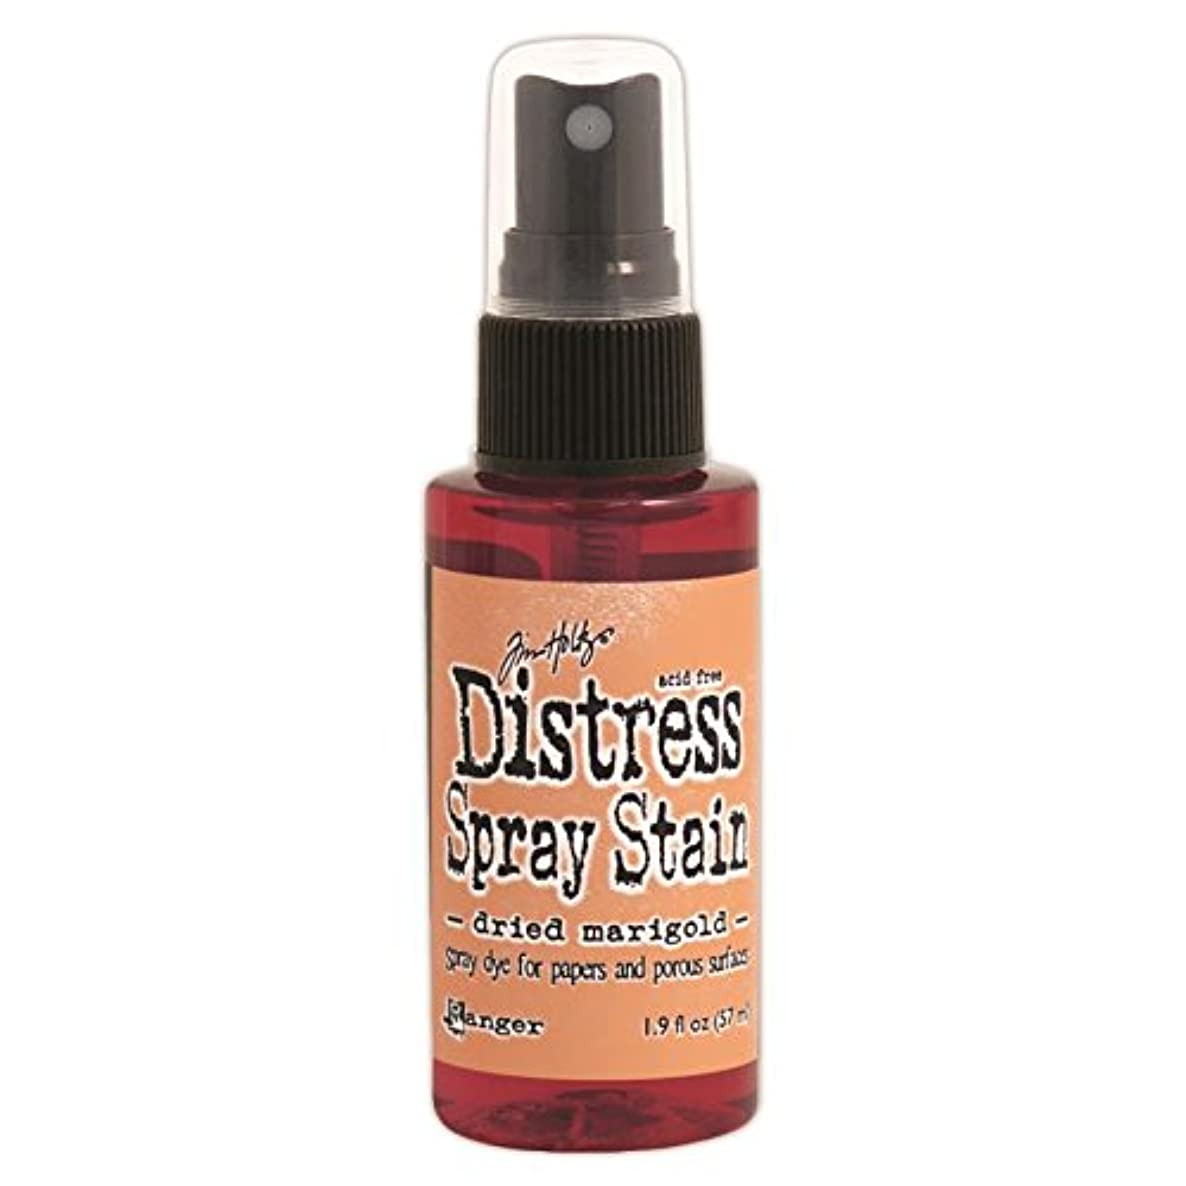 Ranger Tim Holtz Distress Spray Stains Bottles, 1.9-Ounce, Dried Marigold